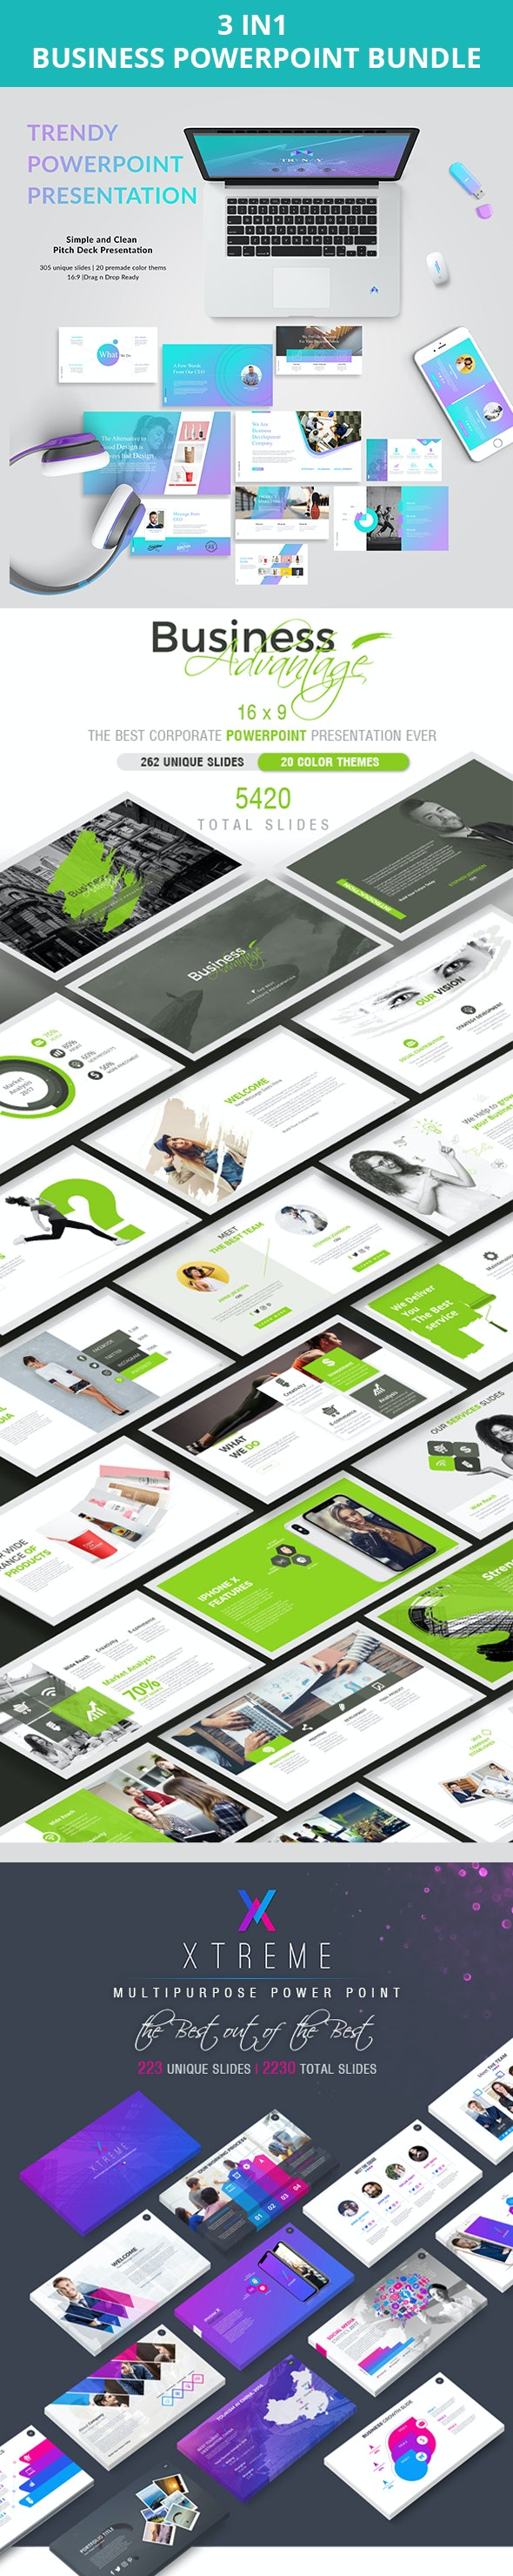 Business  PowerPoint  Bundle - Business Keynote Templates